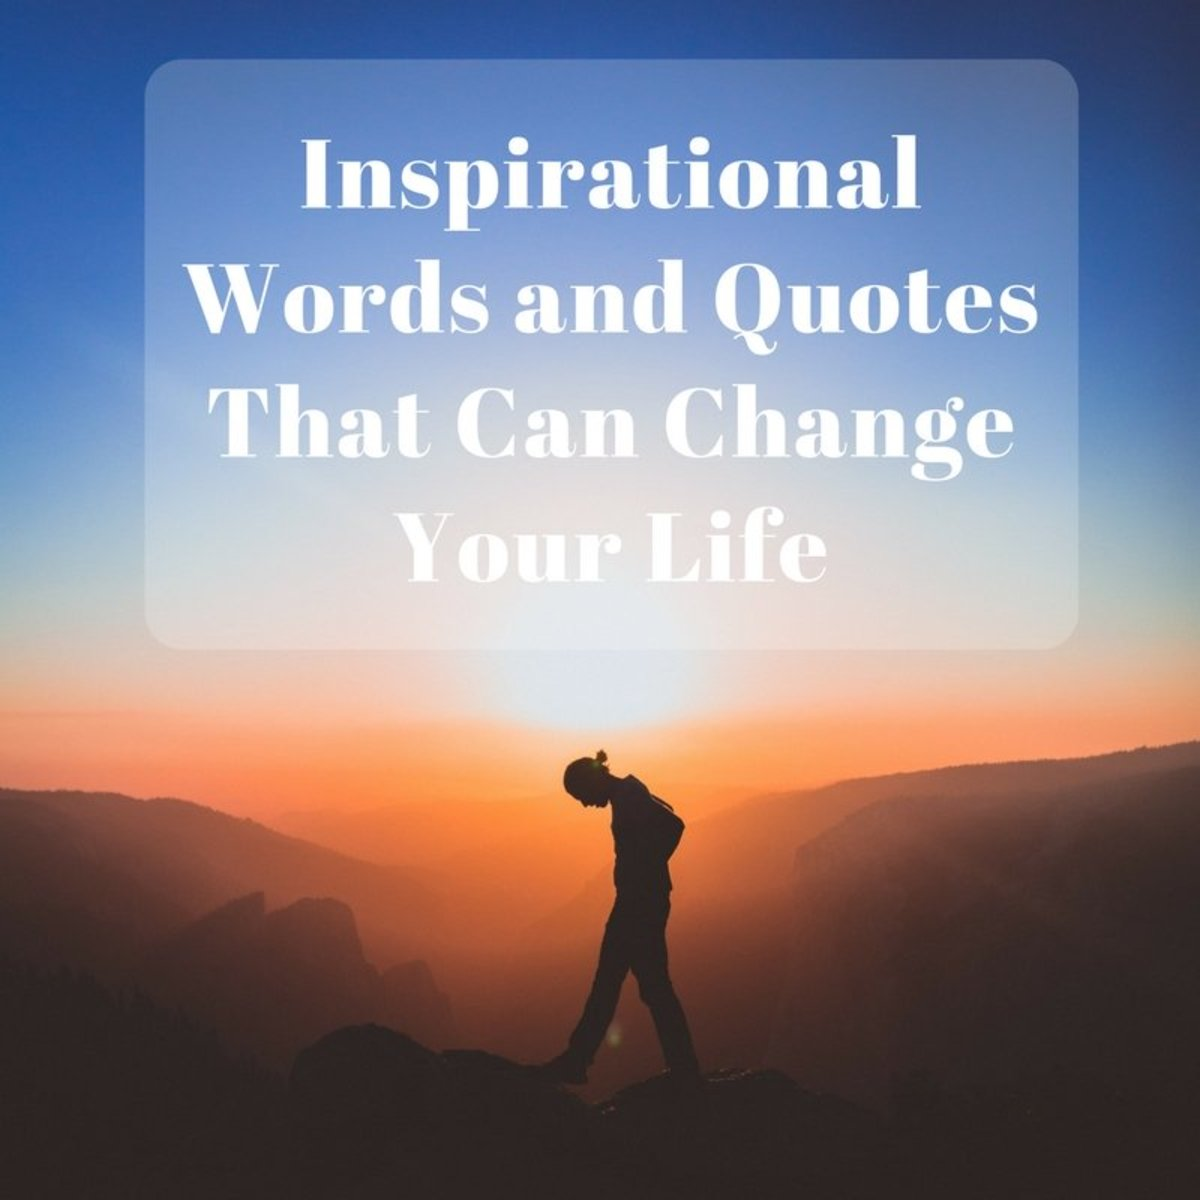 Motivational Words Amusing 30 Motivational Words And Quotes That Can Change Your Life